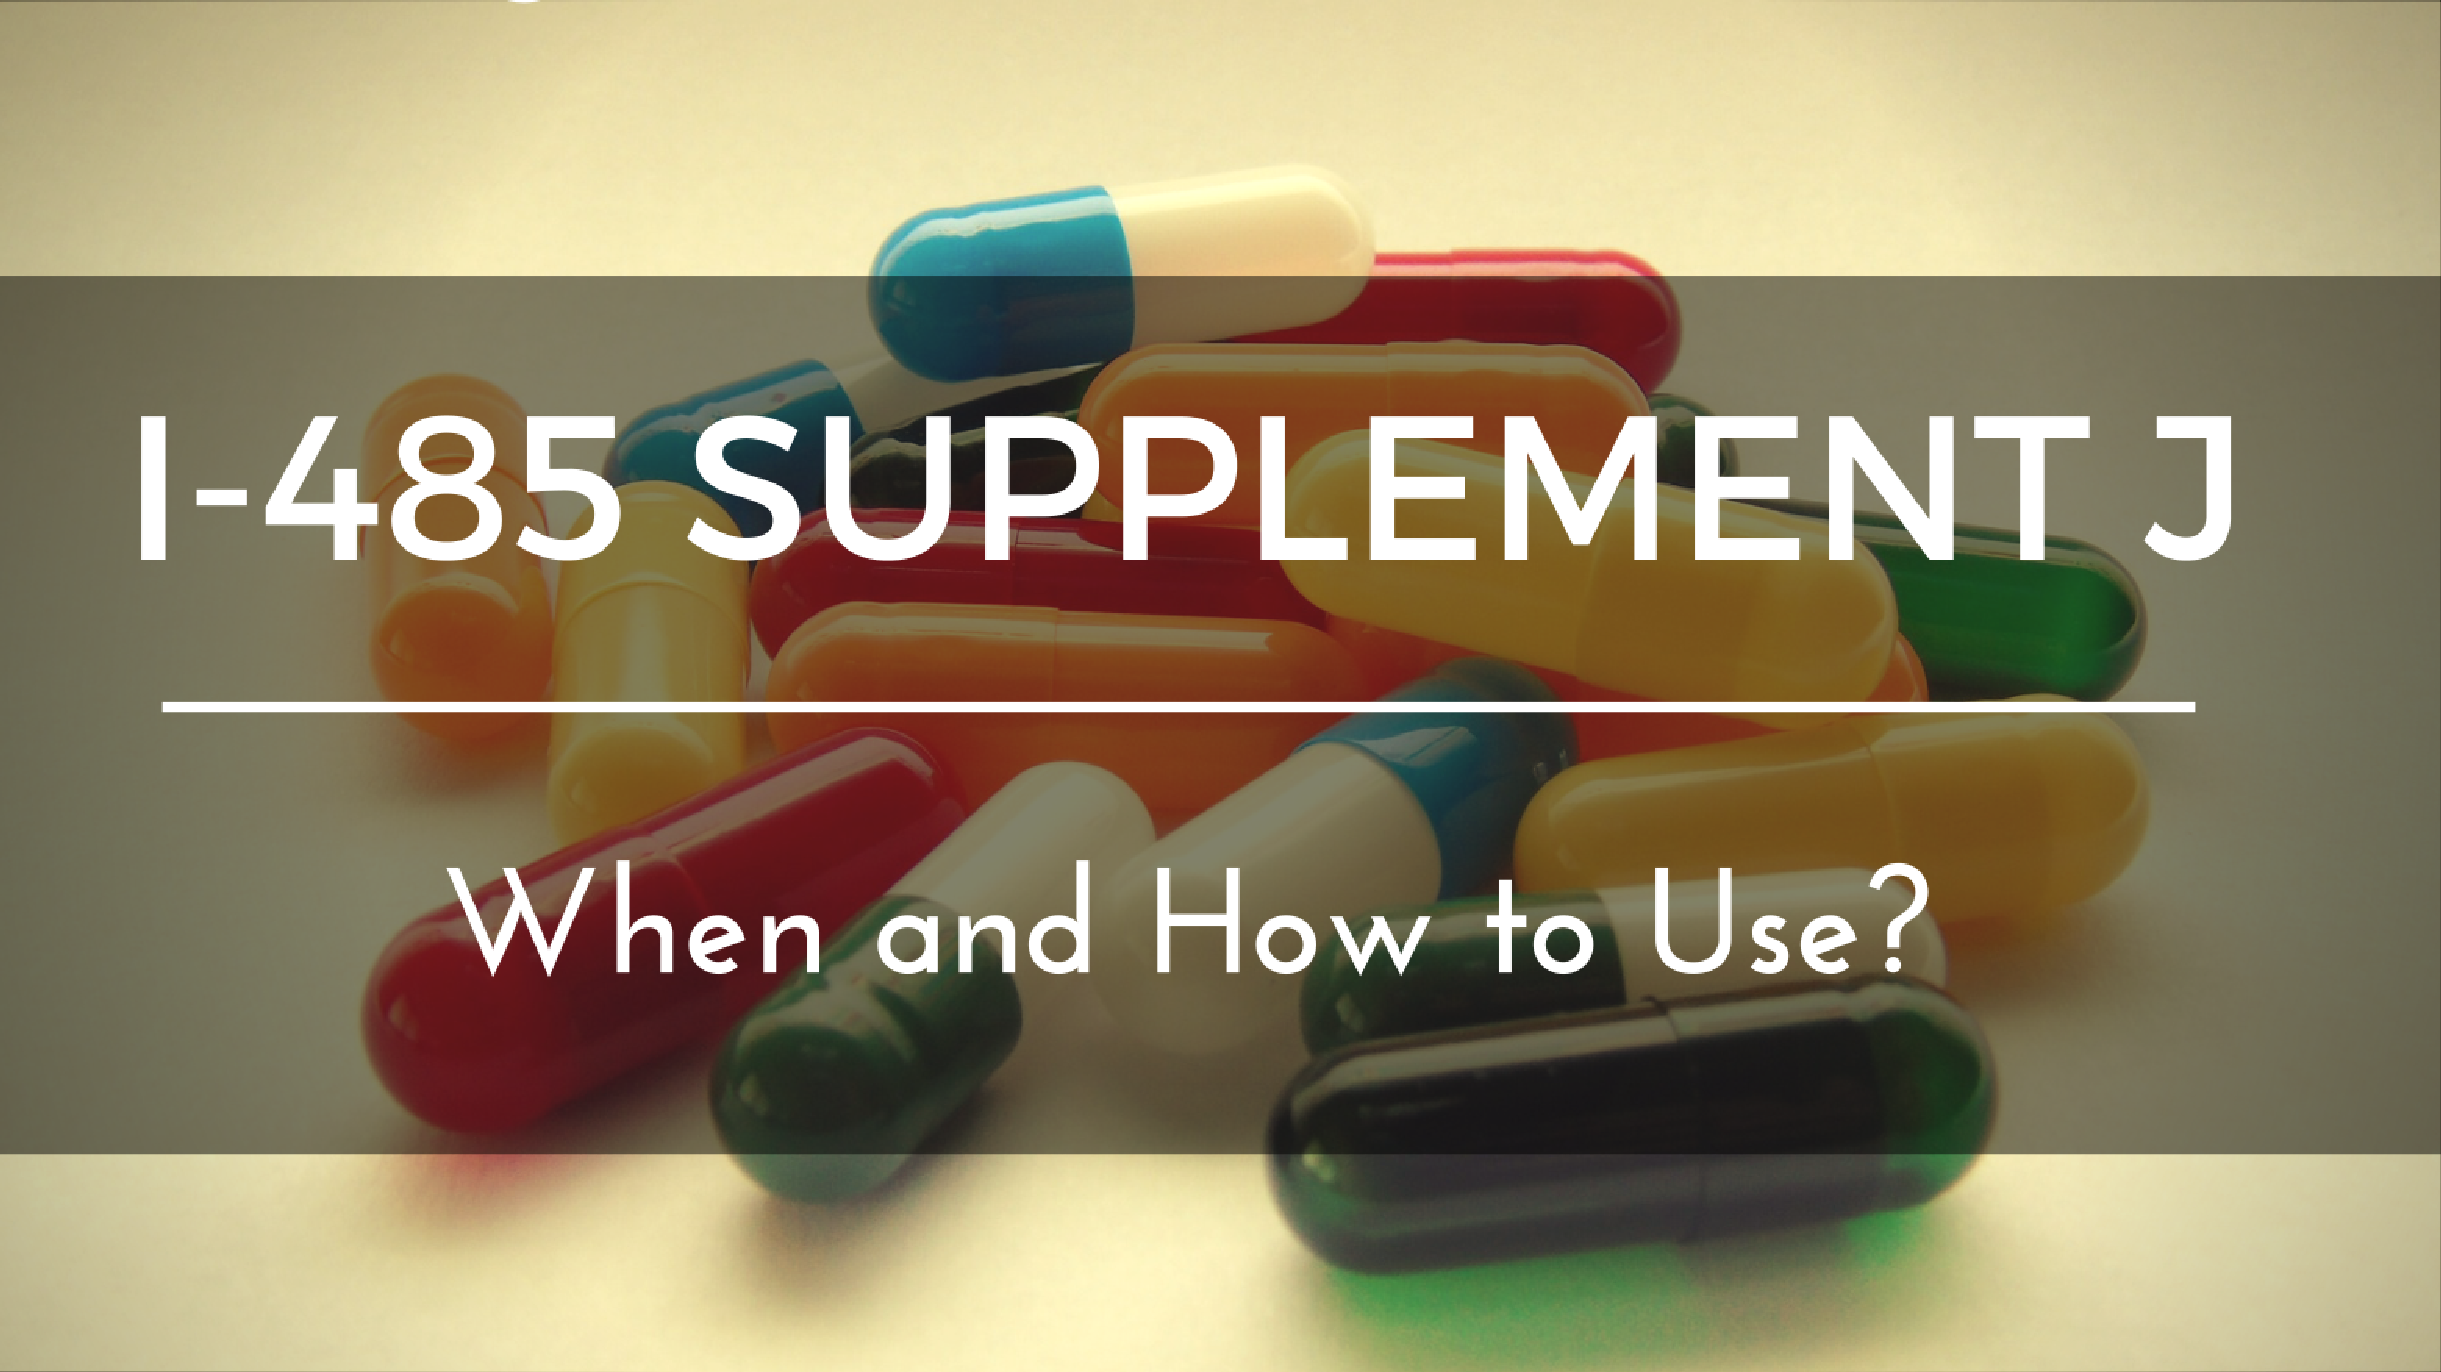 What is I-485 Supplement J and How to Properly Prepare and Use it